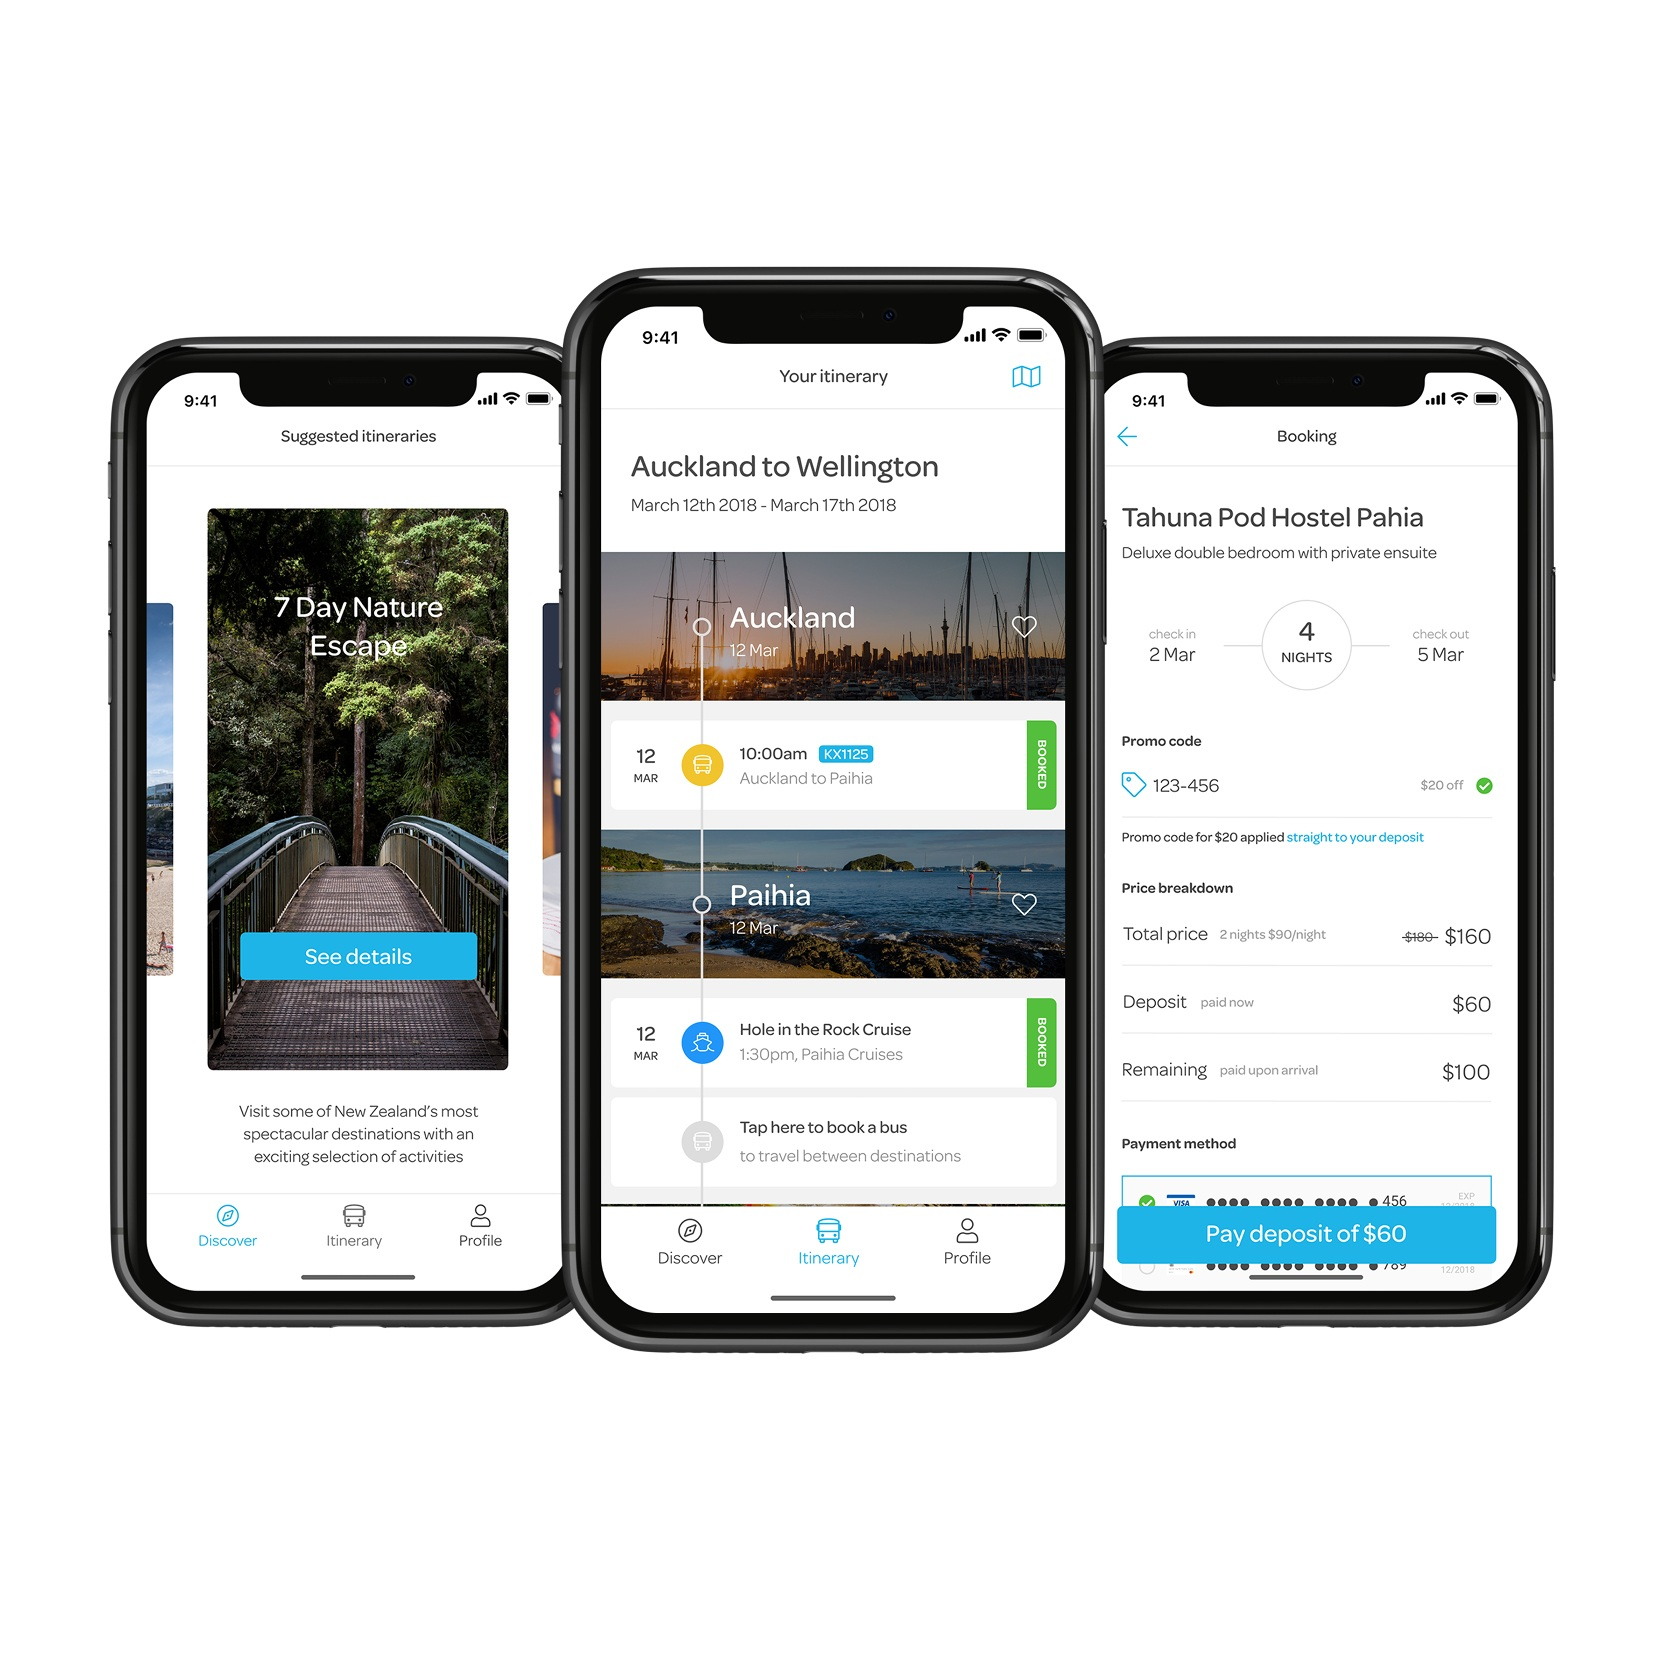 The App - A white label interface that can be customised to your own brand. One app for customers to review options, make bookings and pay seamlessly. The app is tailored to suit a business's requirements for presenting ancillary services to travellers all connected to an original booking. Increase the customer experience and understand what they do rather than what they say.